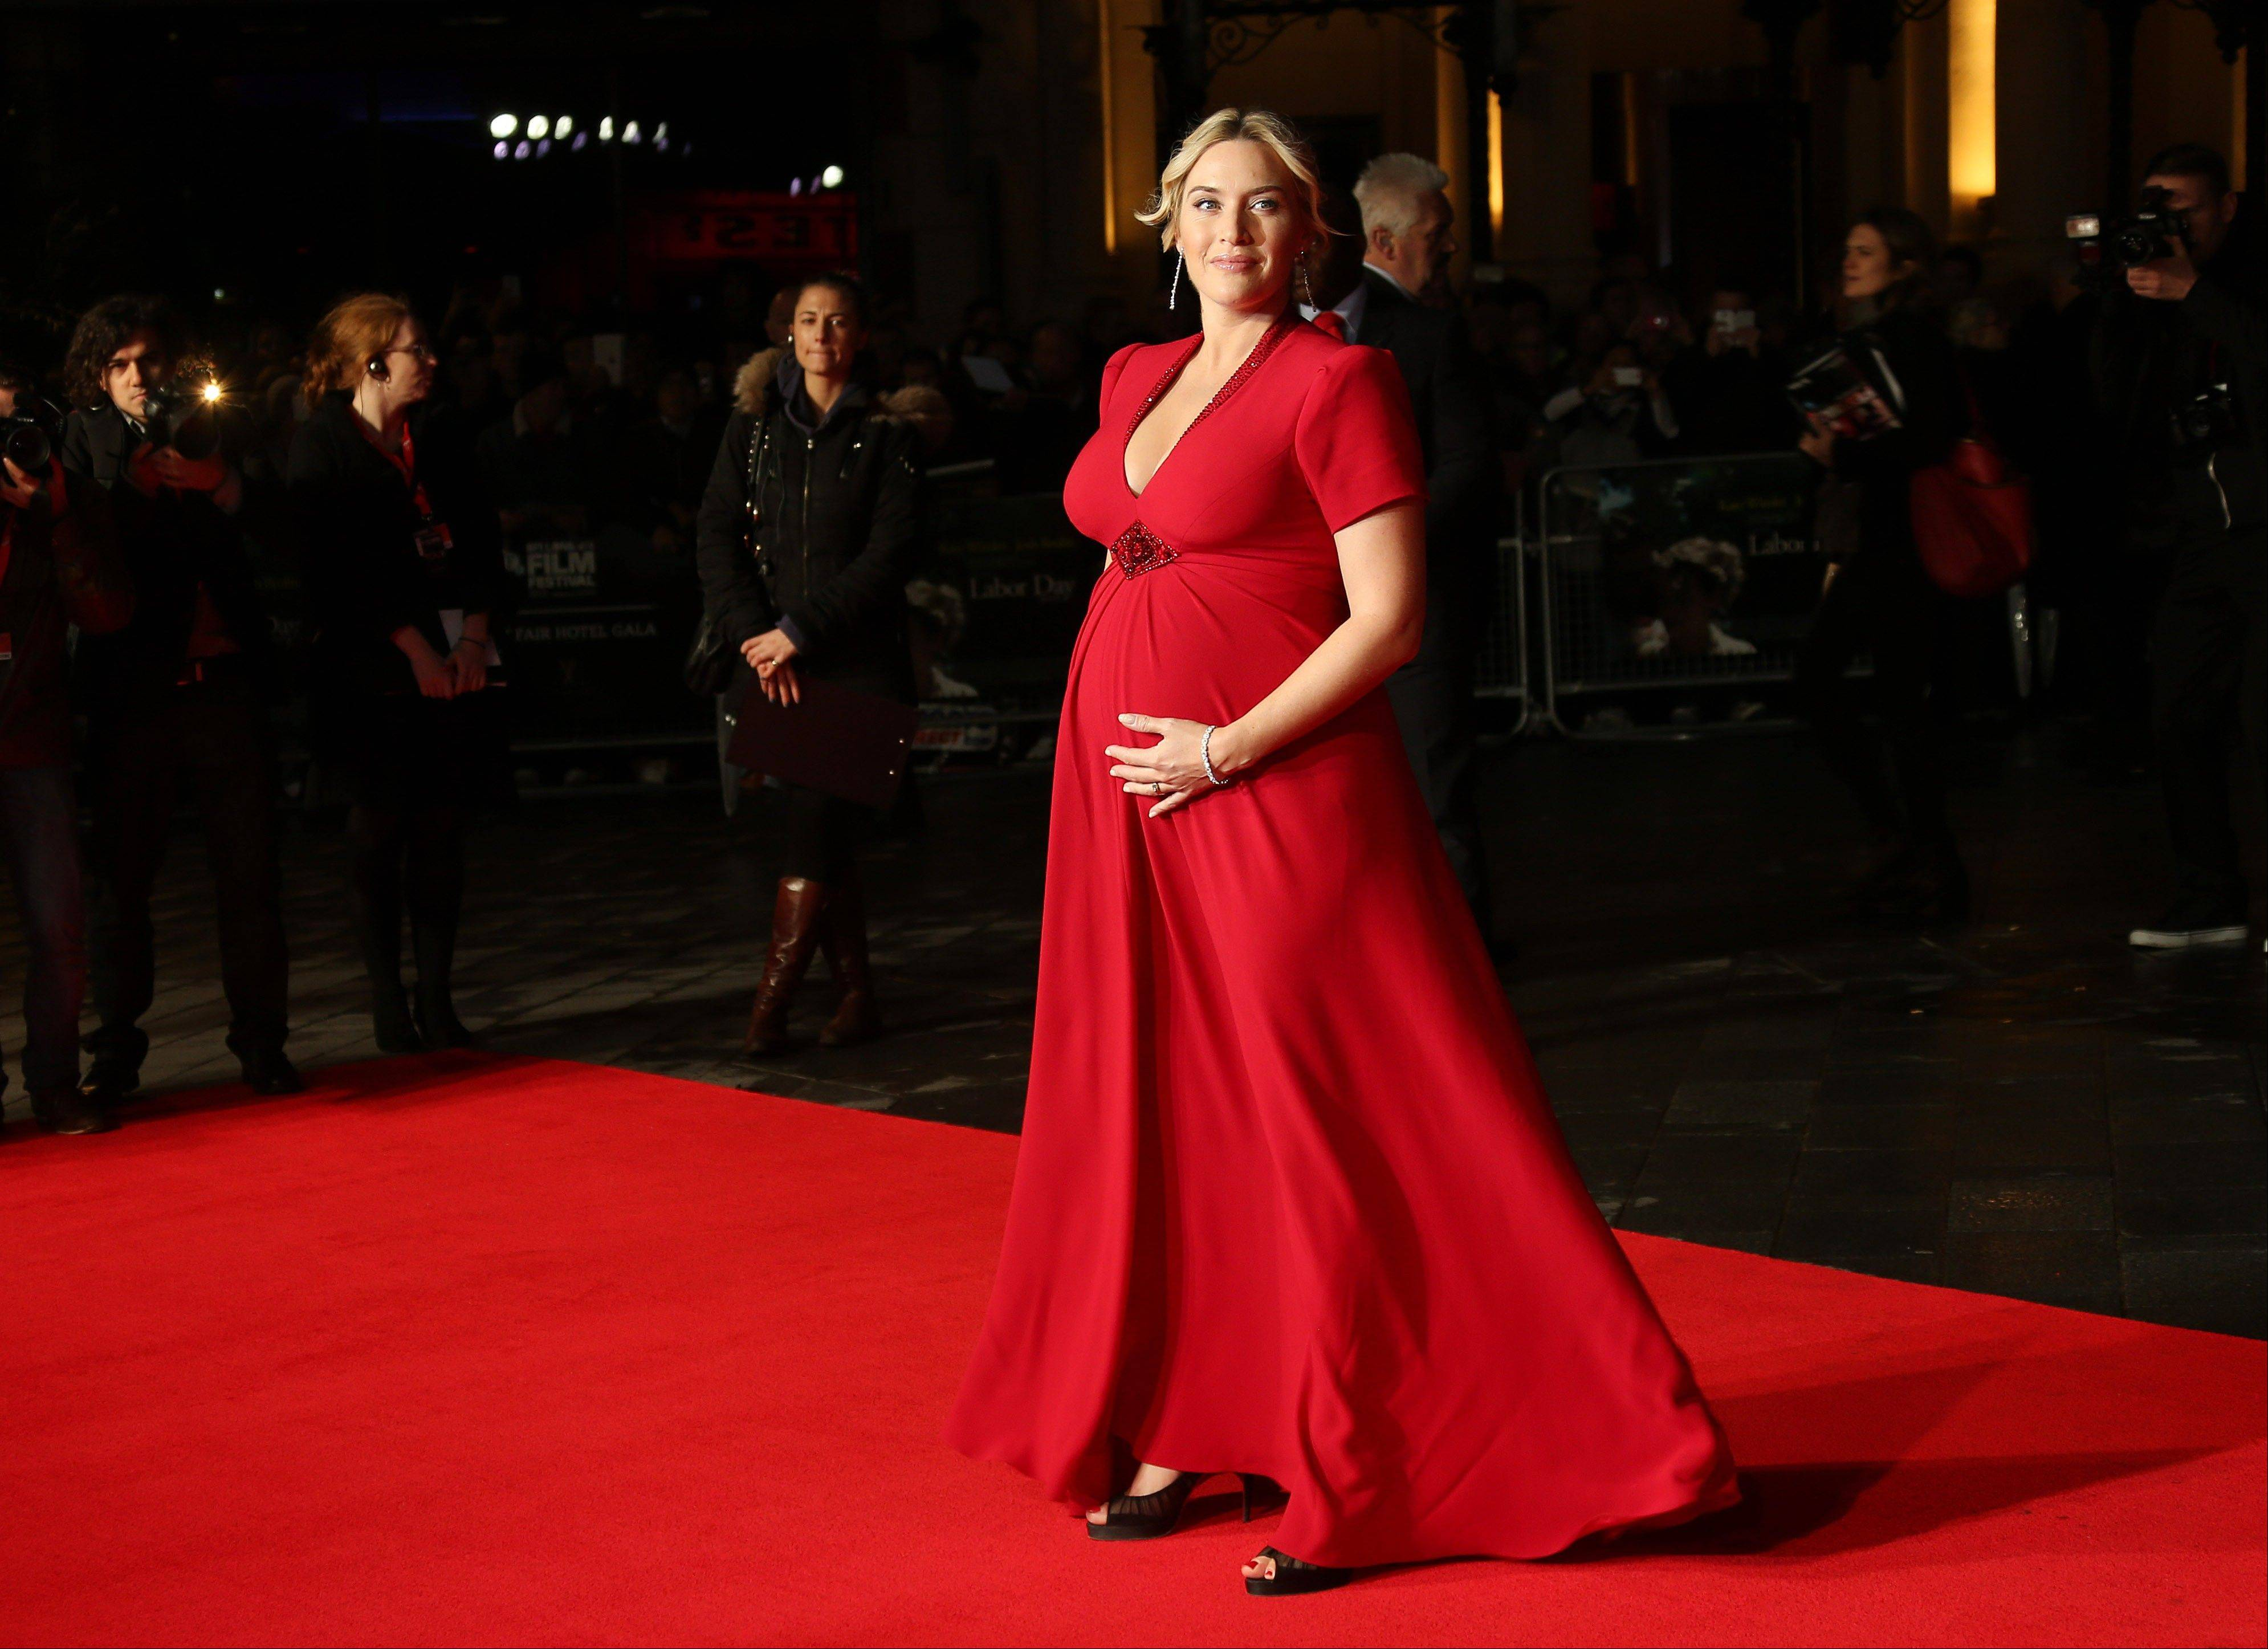 A spokeswoman for Kate Winslet says the actress has given birth to a son and is �doing great.�